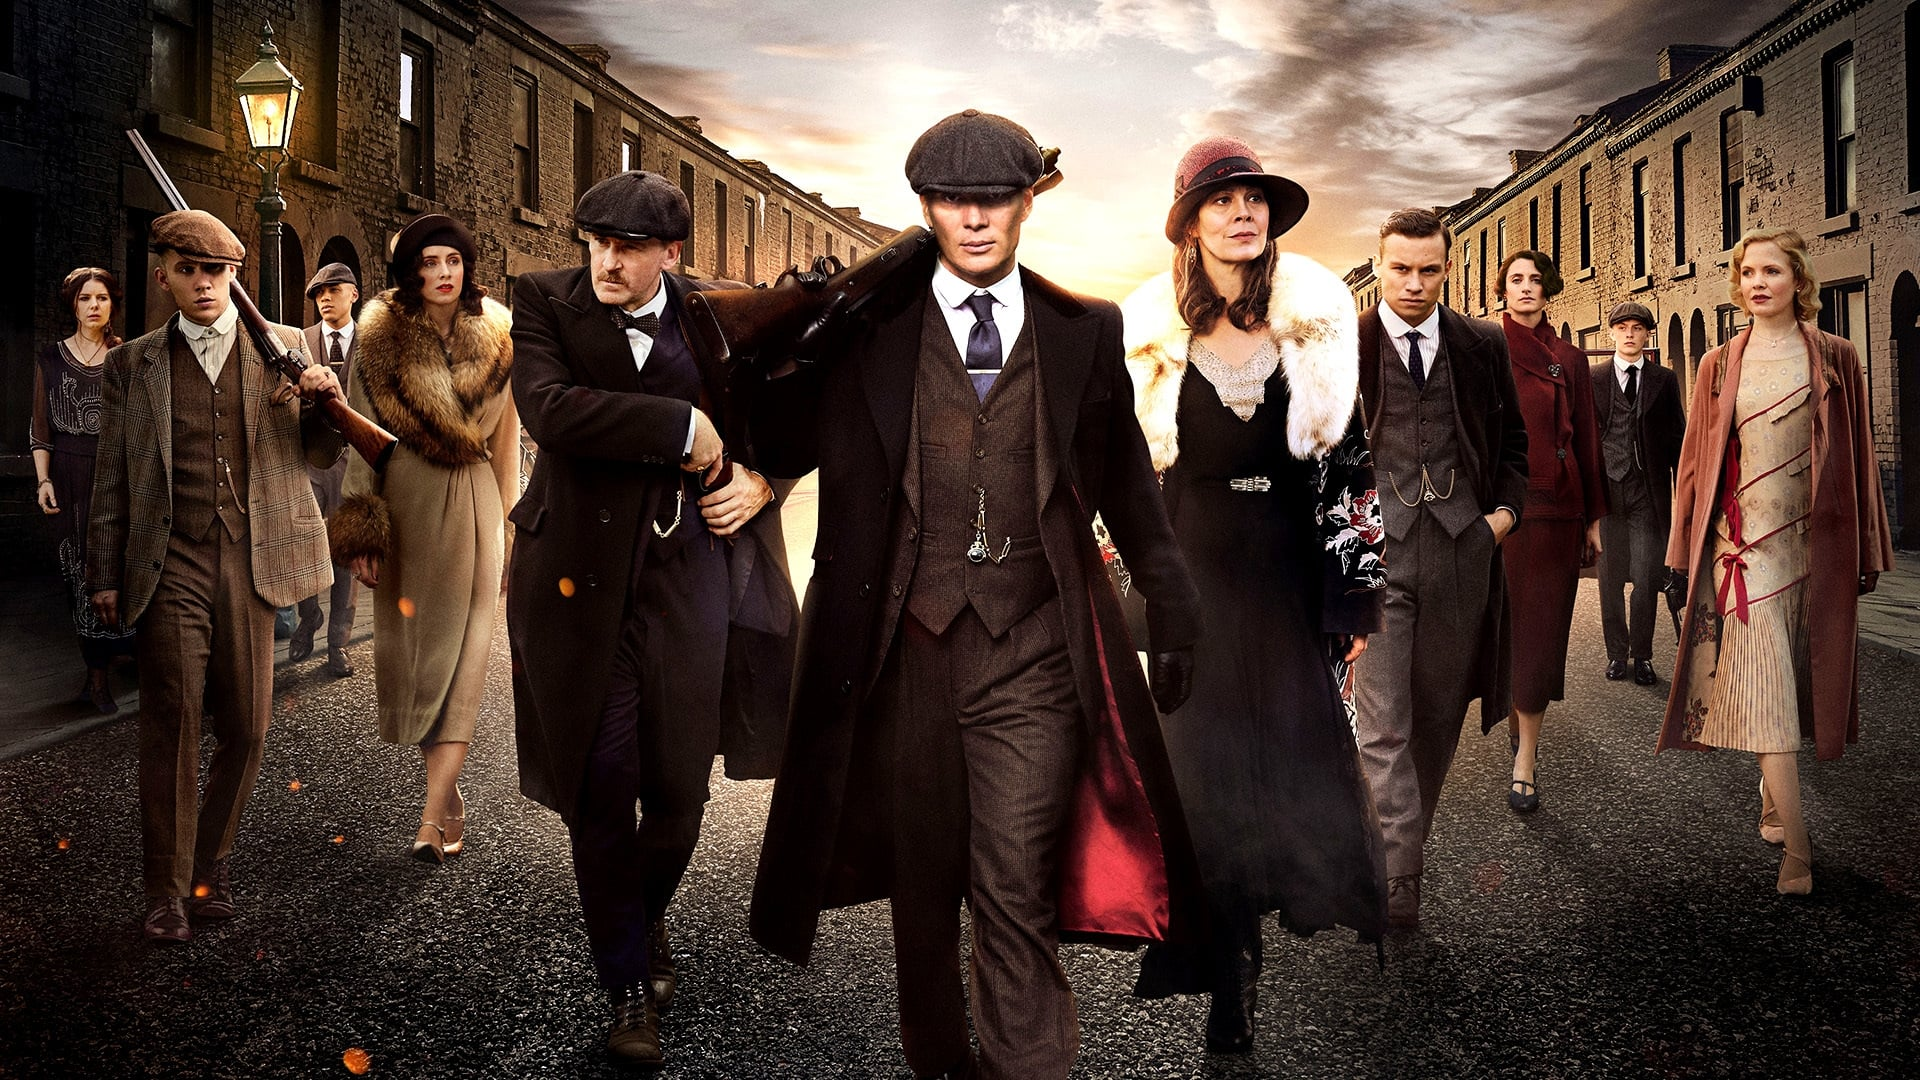 A gangster family epic set in 1919 Birmingham, England and centered on a gang who sew razor blades in the peaks of their caps, and their fierce boss Tommy Shelby, who means to move up in the world.